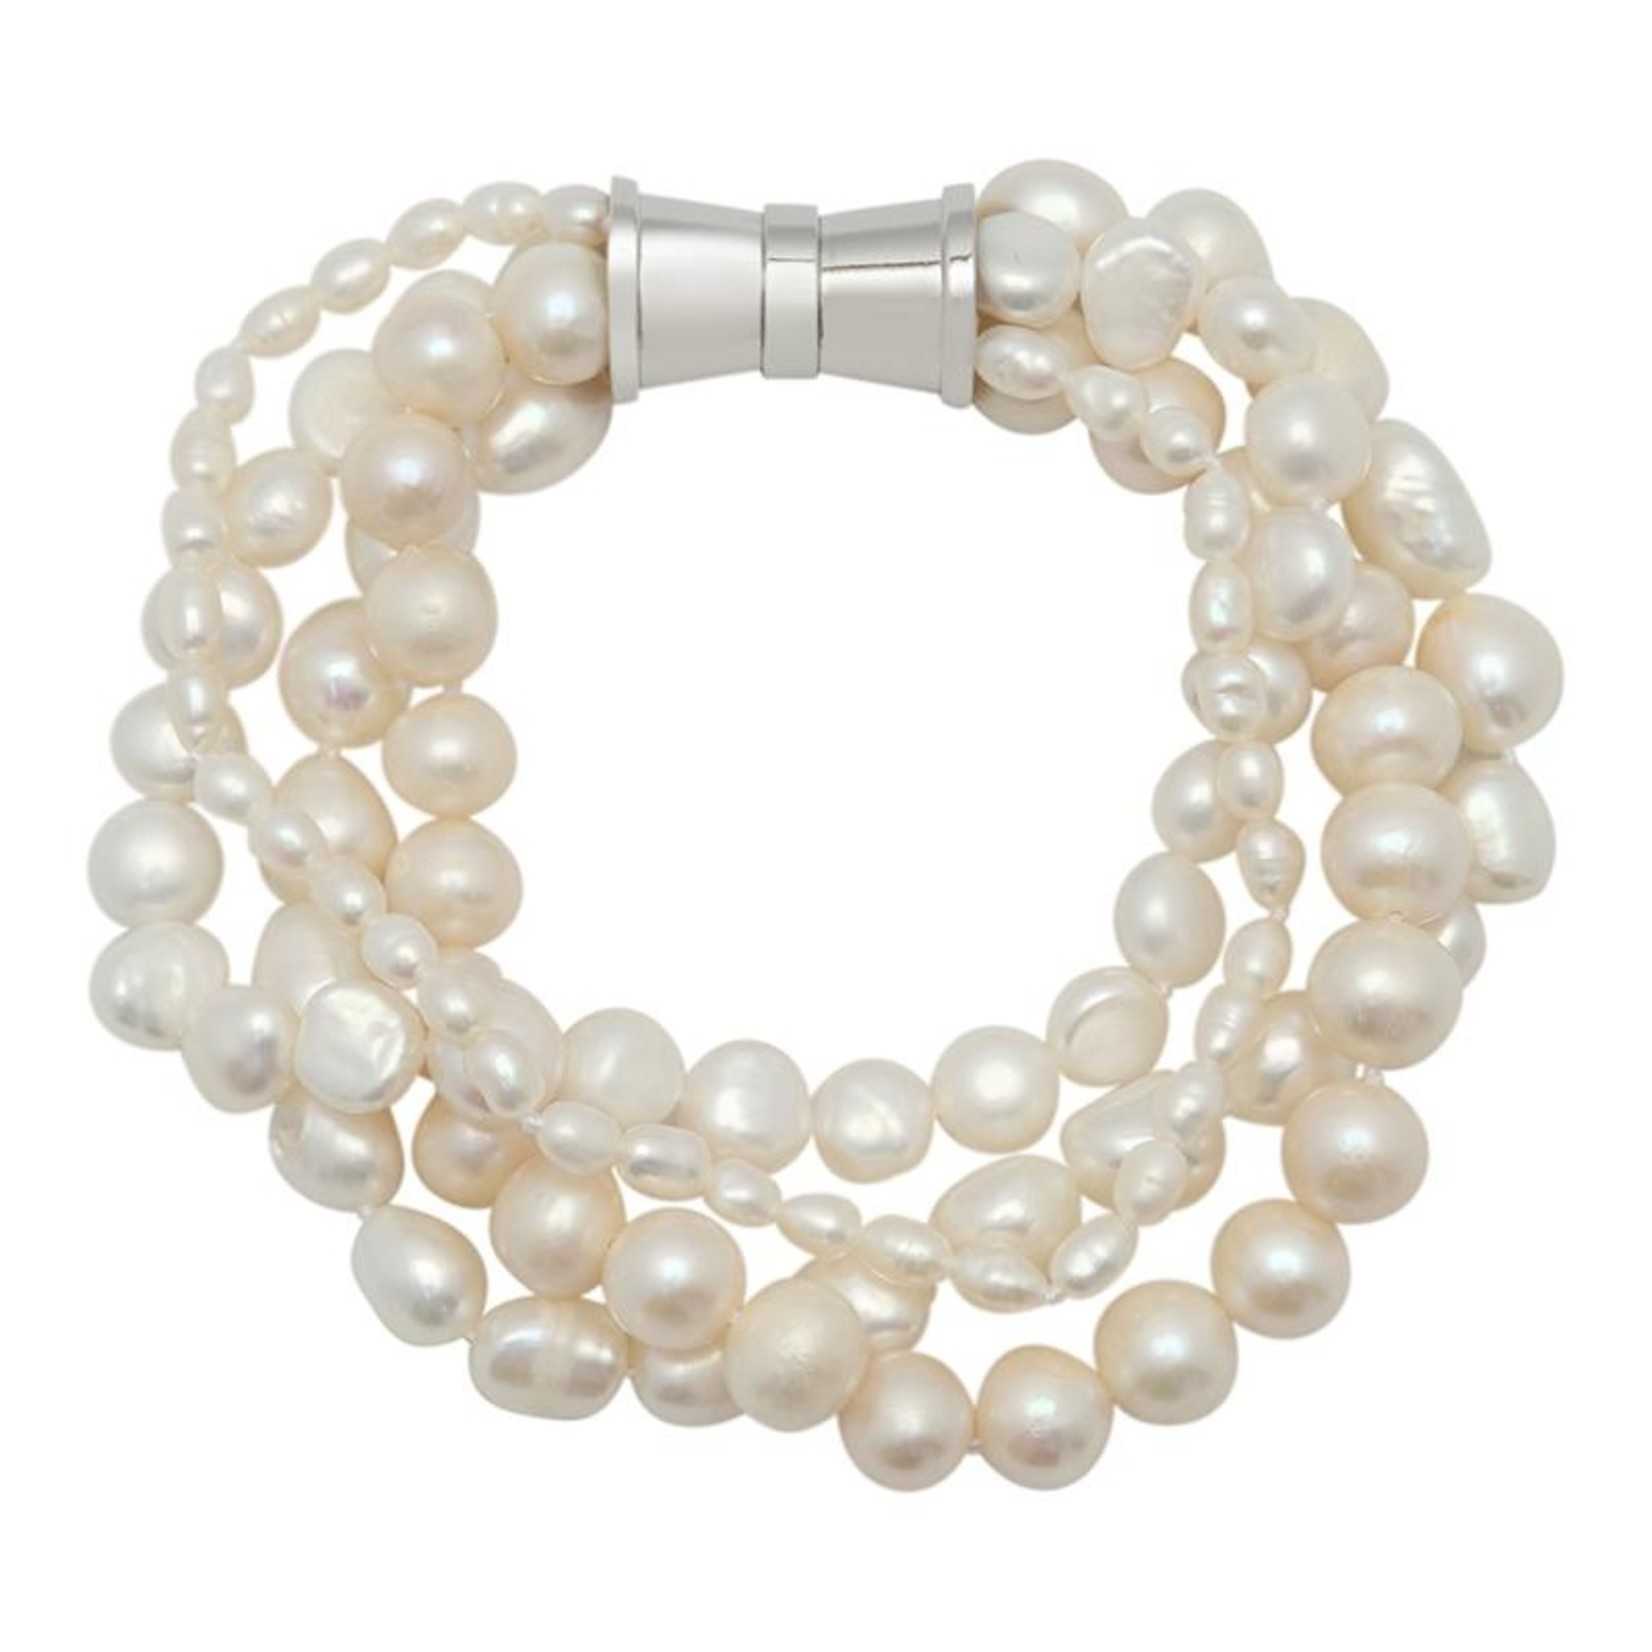 Girl With a Pearl 4 Strand Bracelet